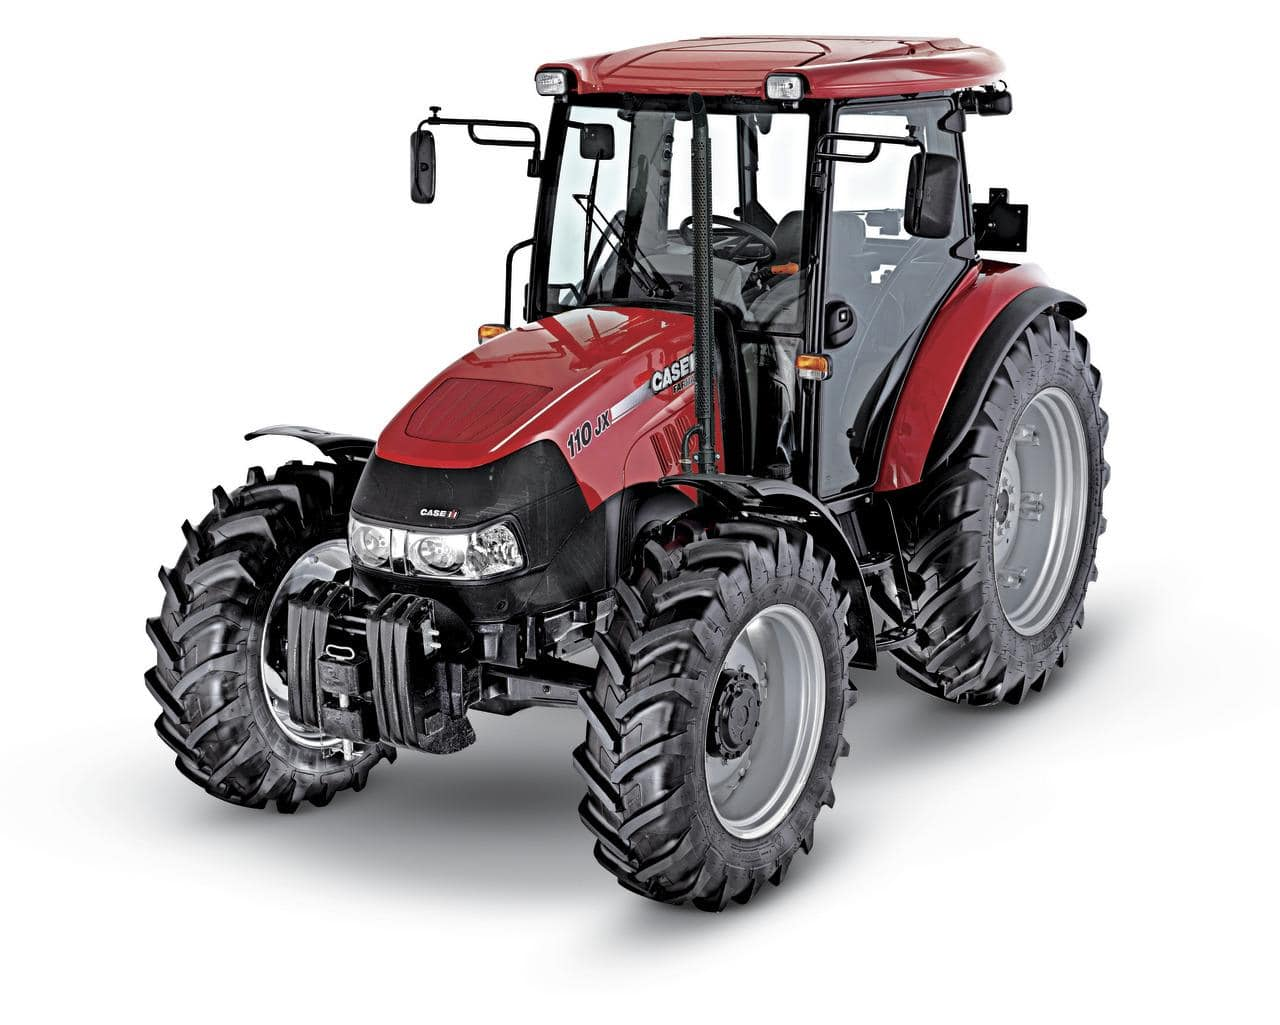 Case Ih Jx75 Wiring Diagram Wire Center 75xt Farmall Jx Tractors Rh Caseih Com Diagrams Online Agriculture